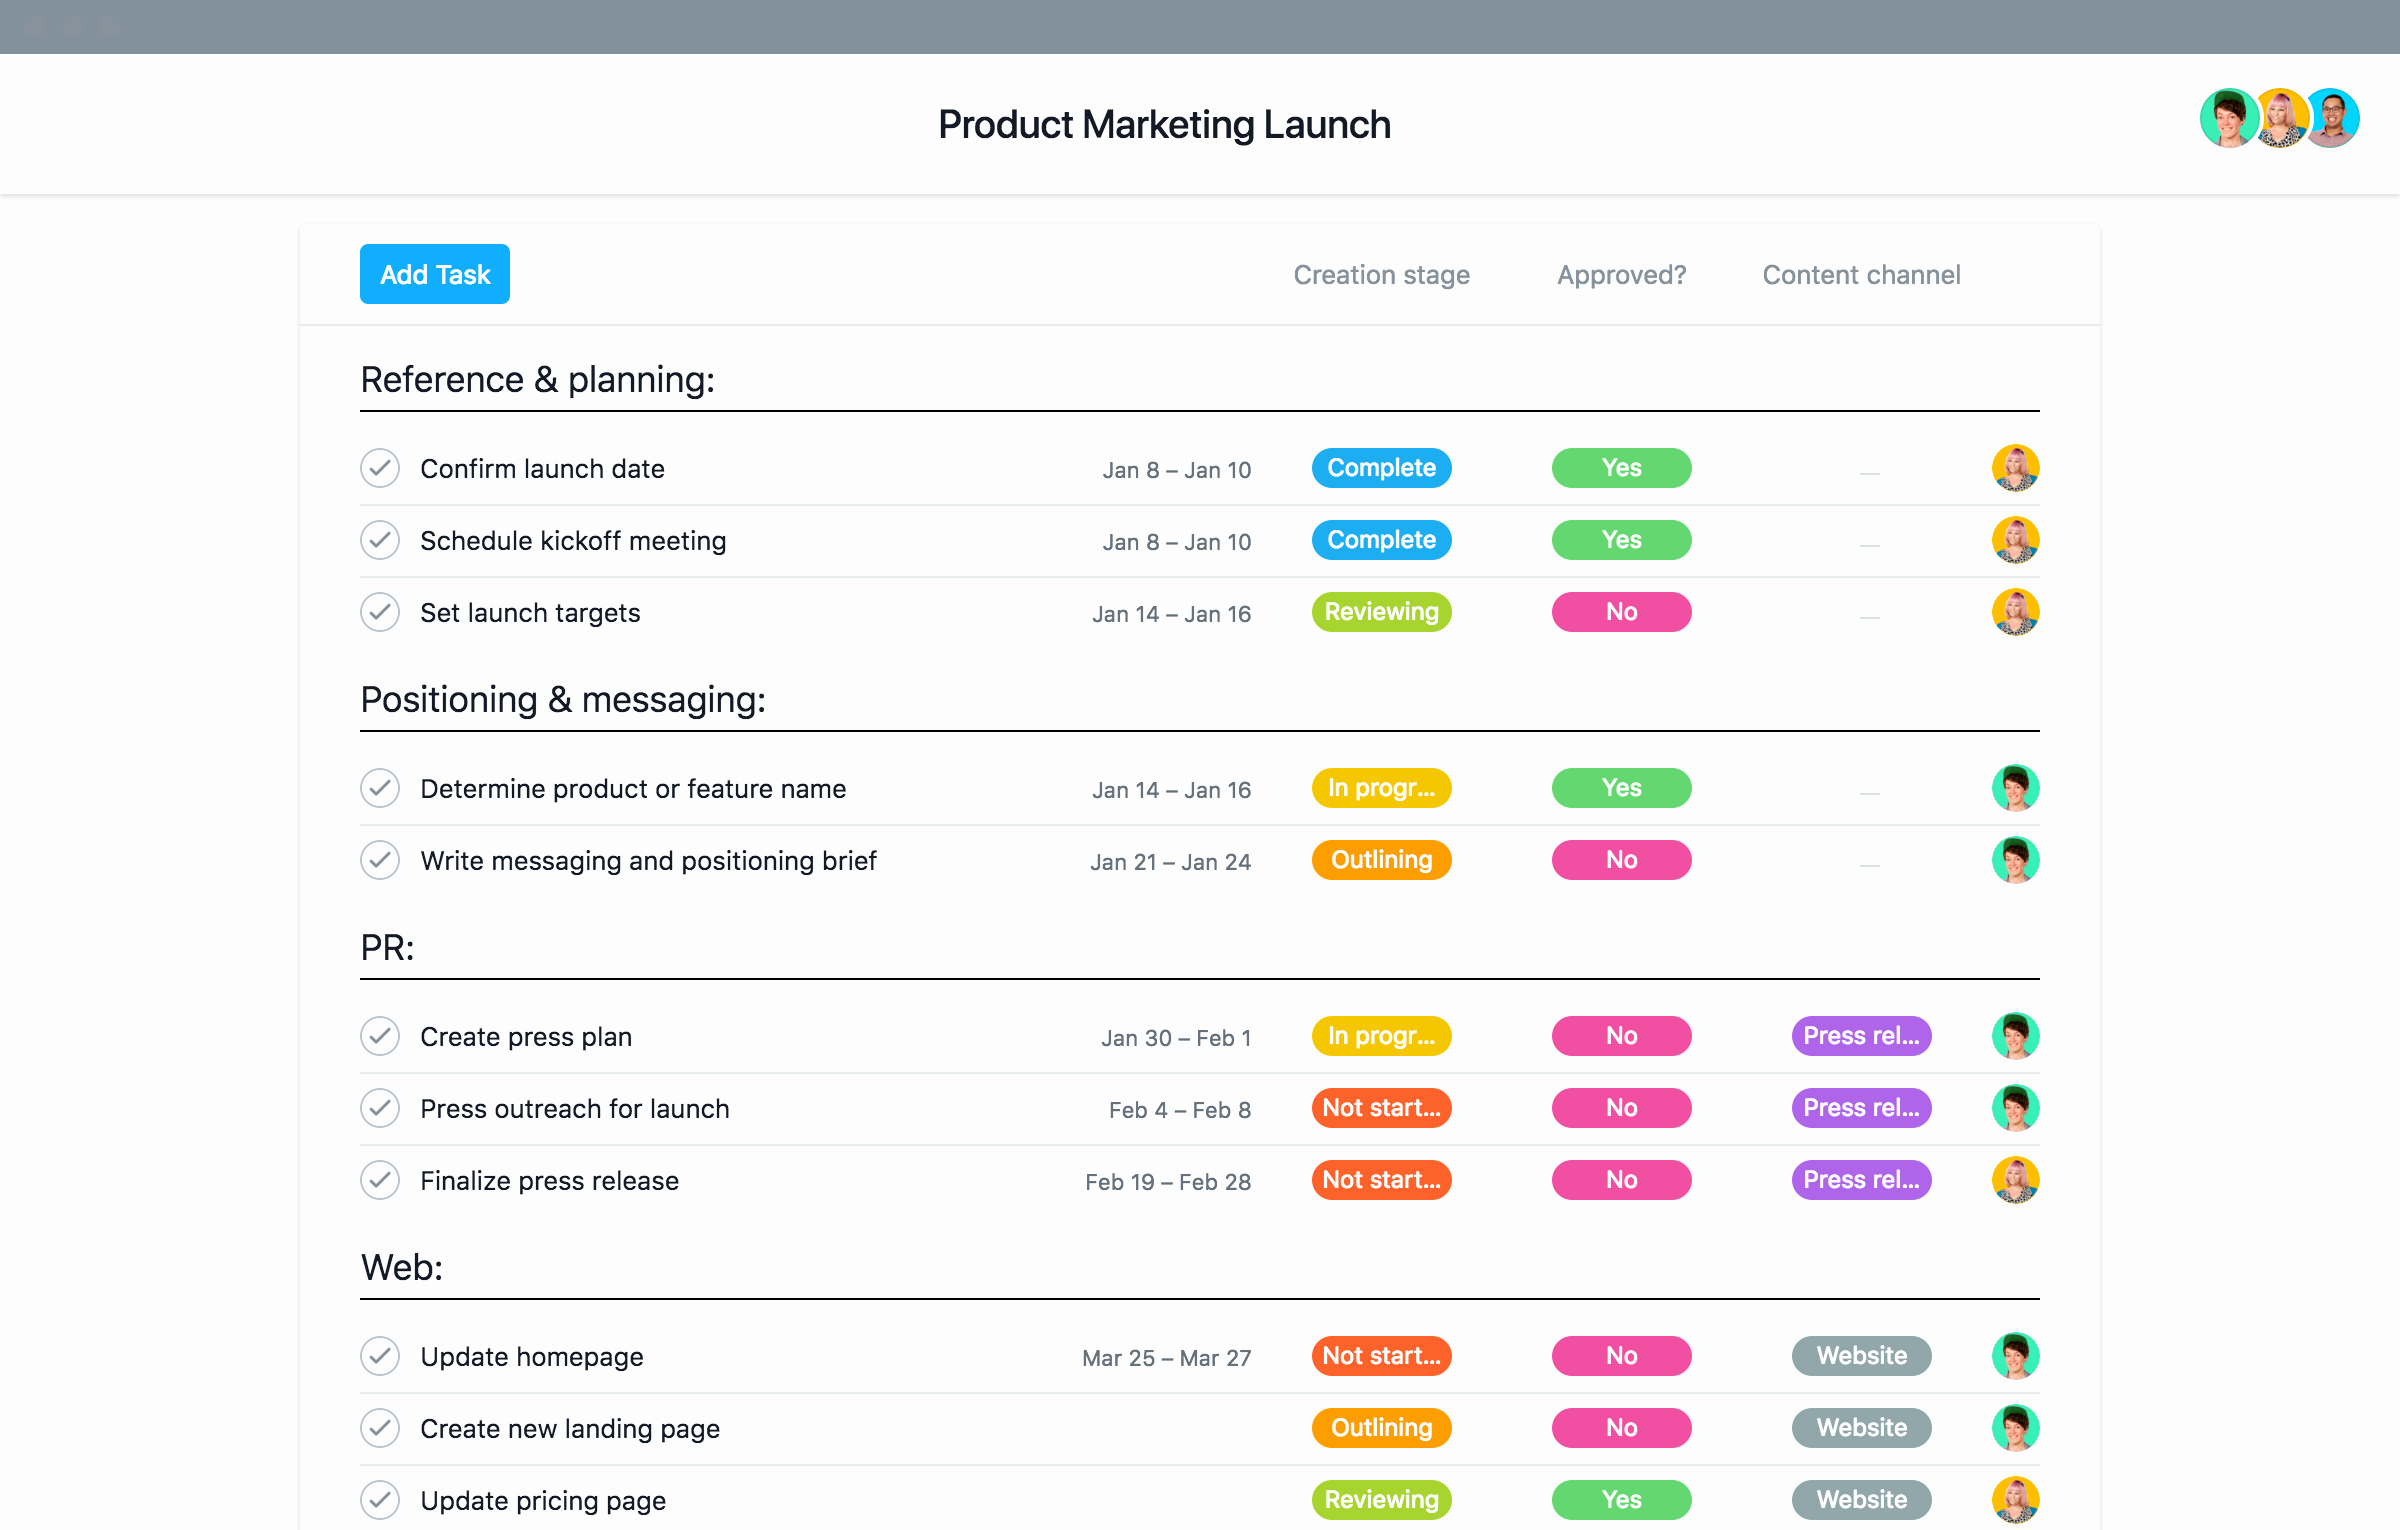 Marketing Launch Plan Template Luxury Marketing Teams Use these Project Templates to Manage